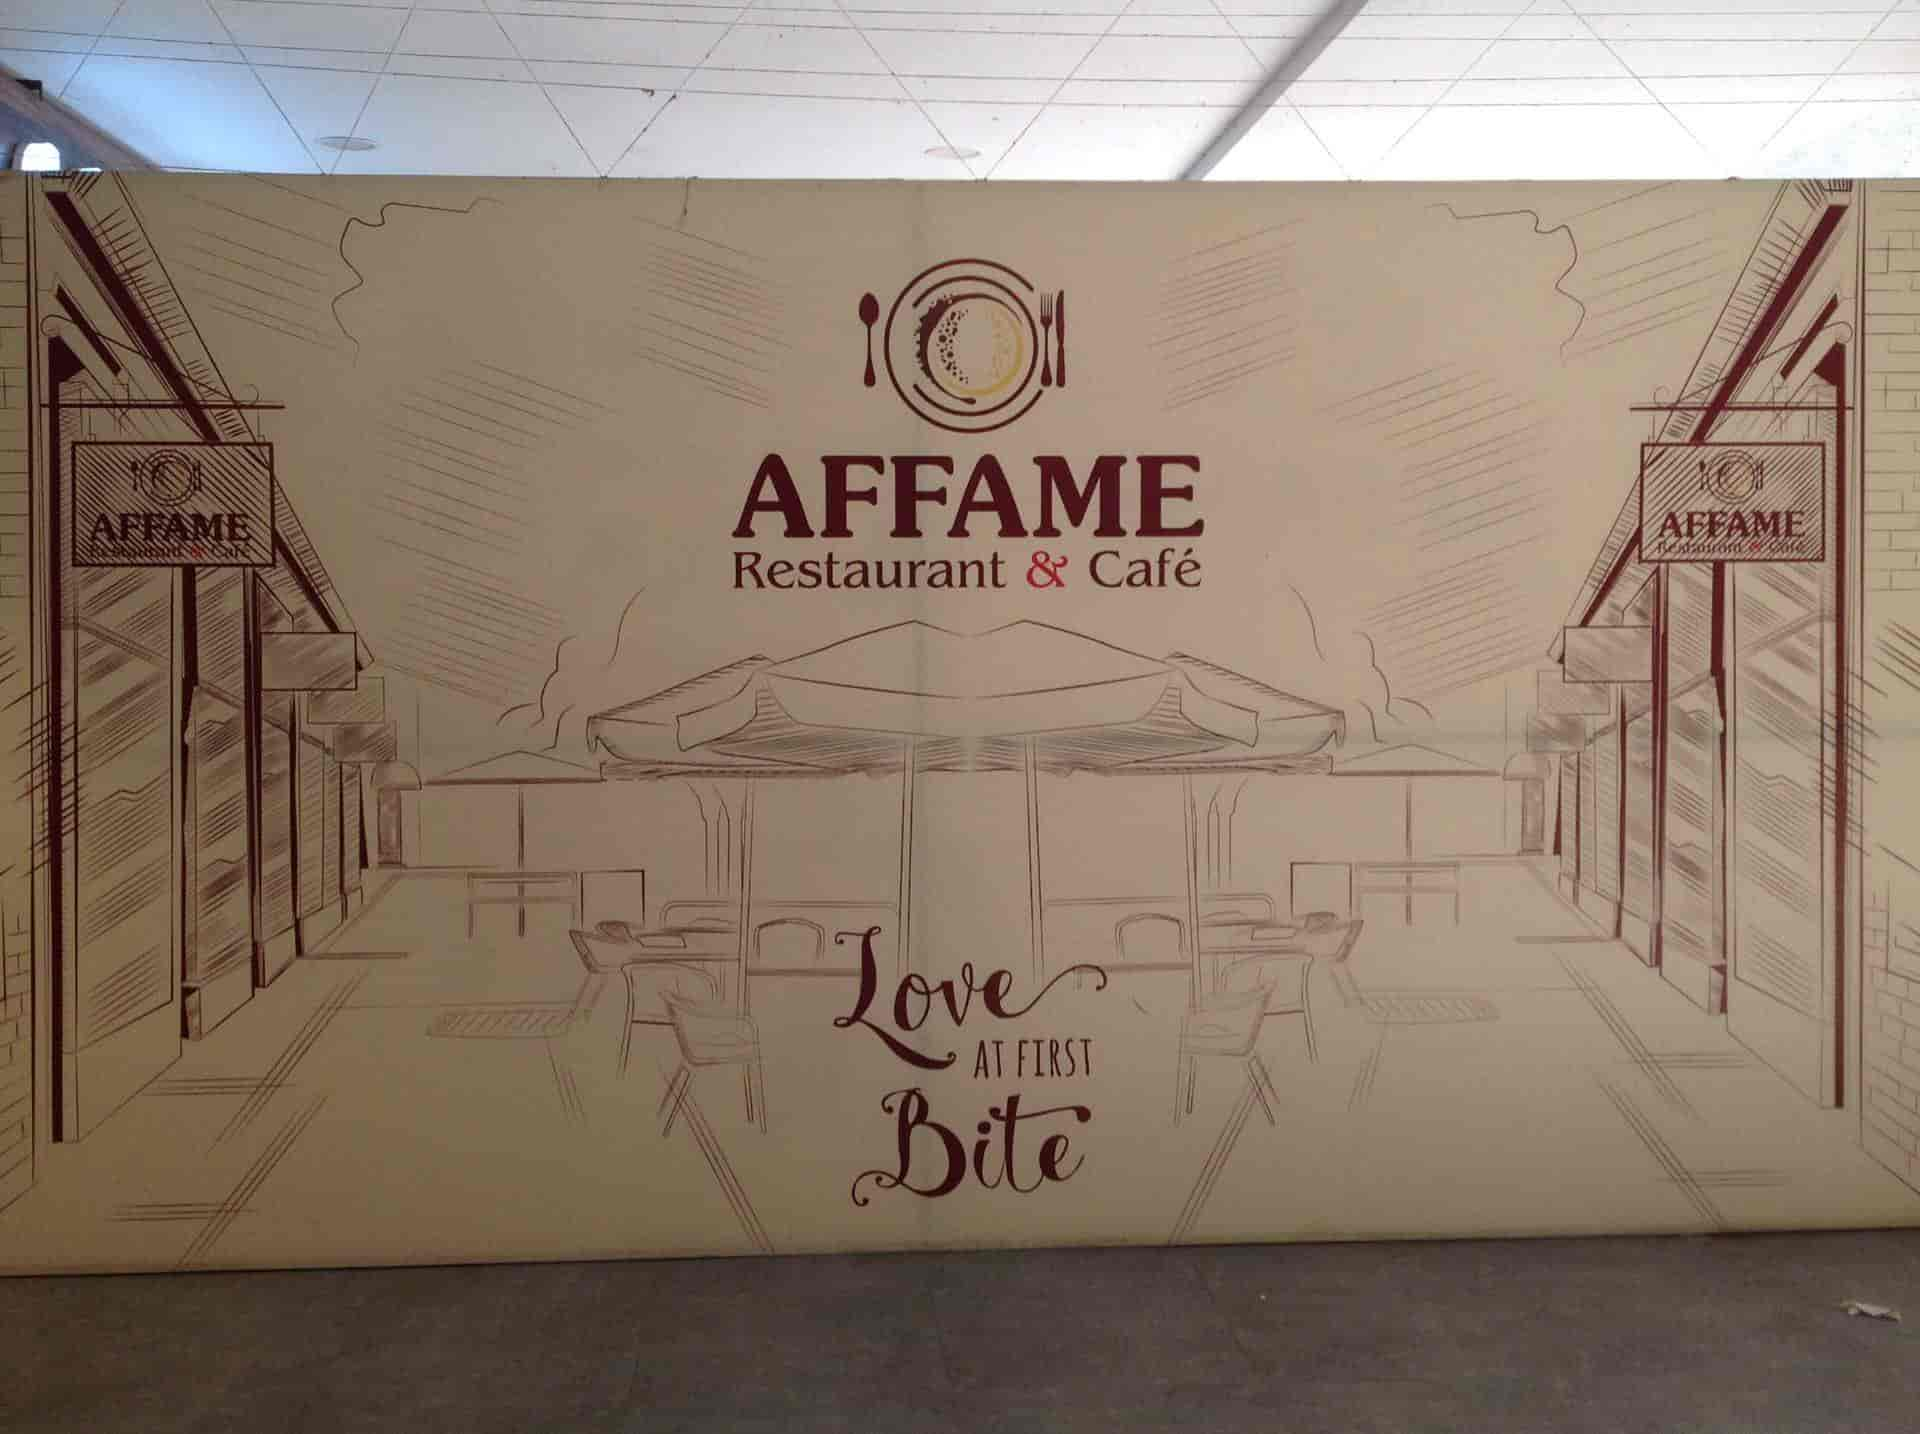 Affame Restaurant Cafe Photos Nadiad Pictures Images Gallery Schematic Restaurants